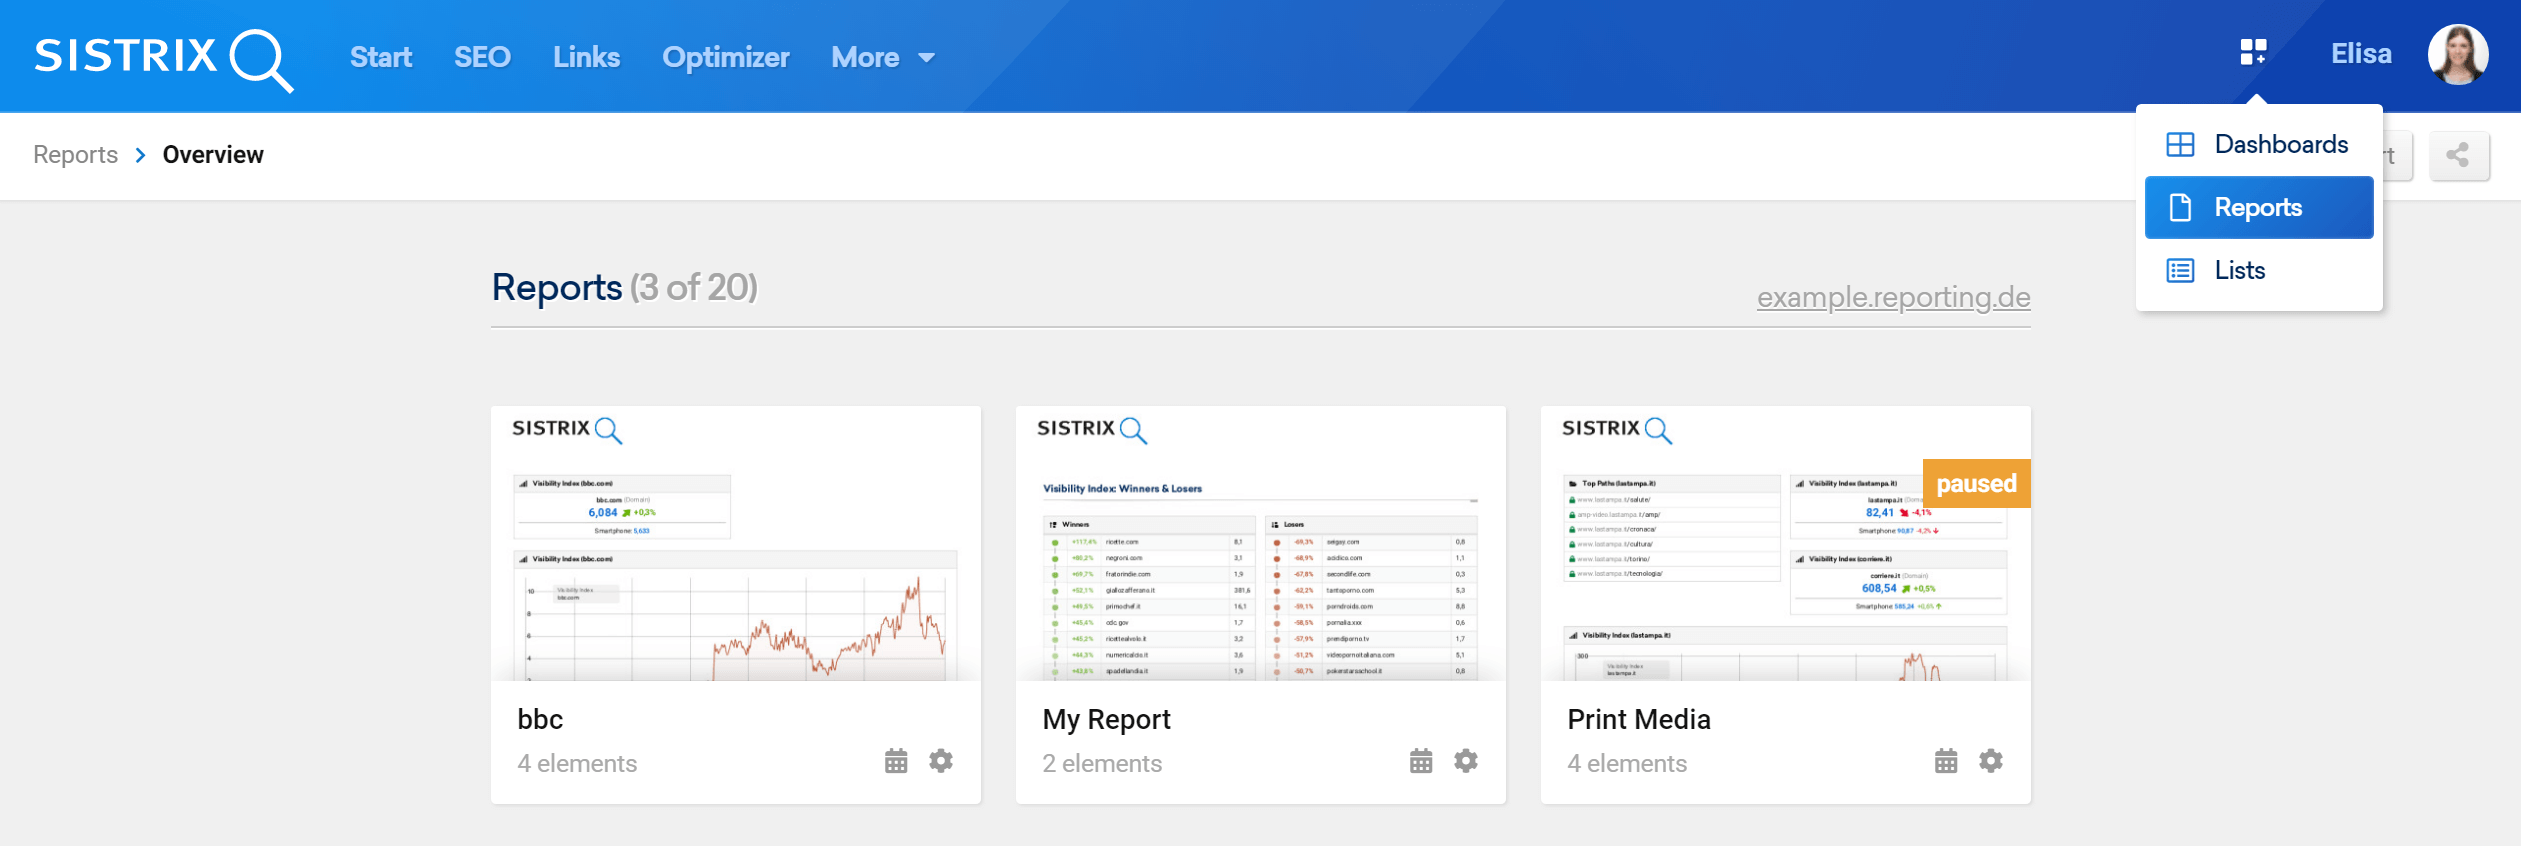 SISTRIX Toolbox: overview page for reports